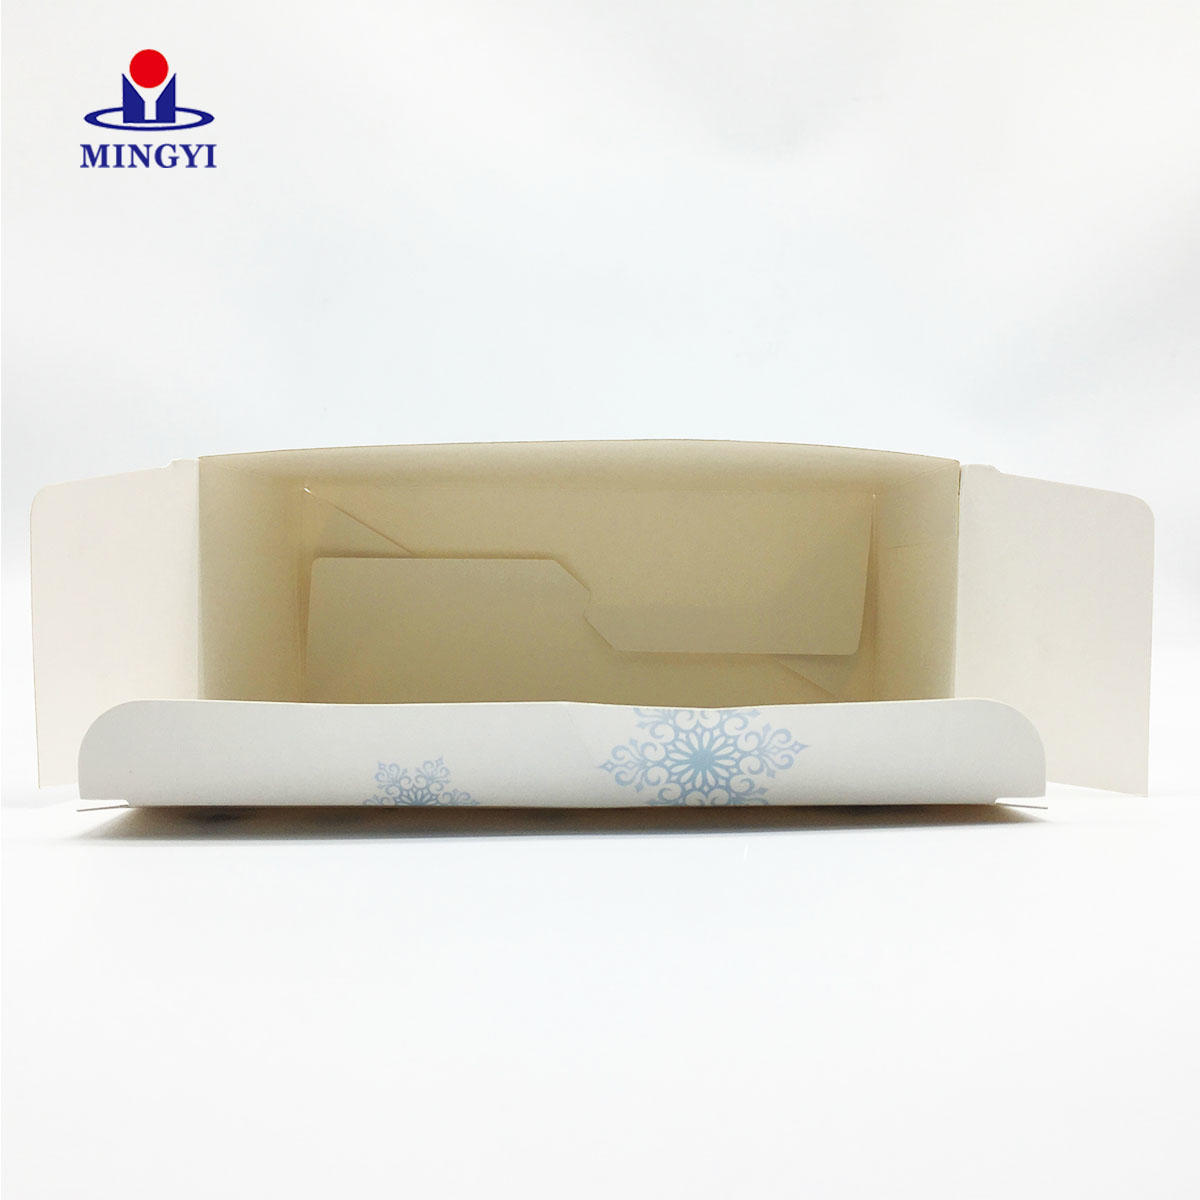 CustomizedC1S Packing Box Mask Paper Cardboard Packaging Box